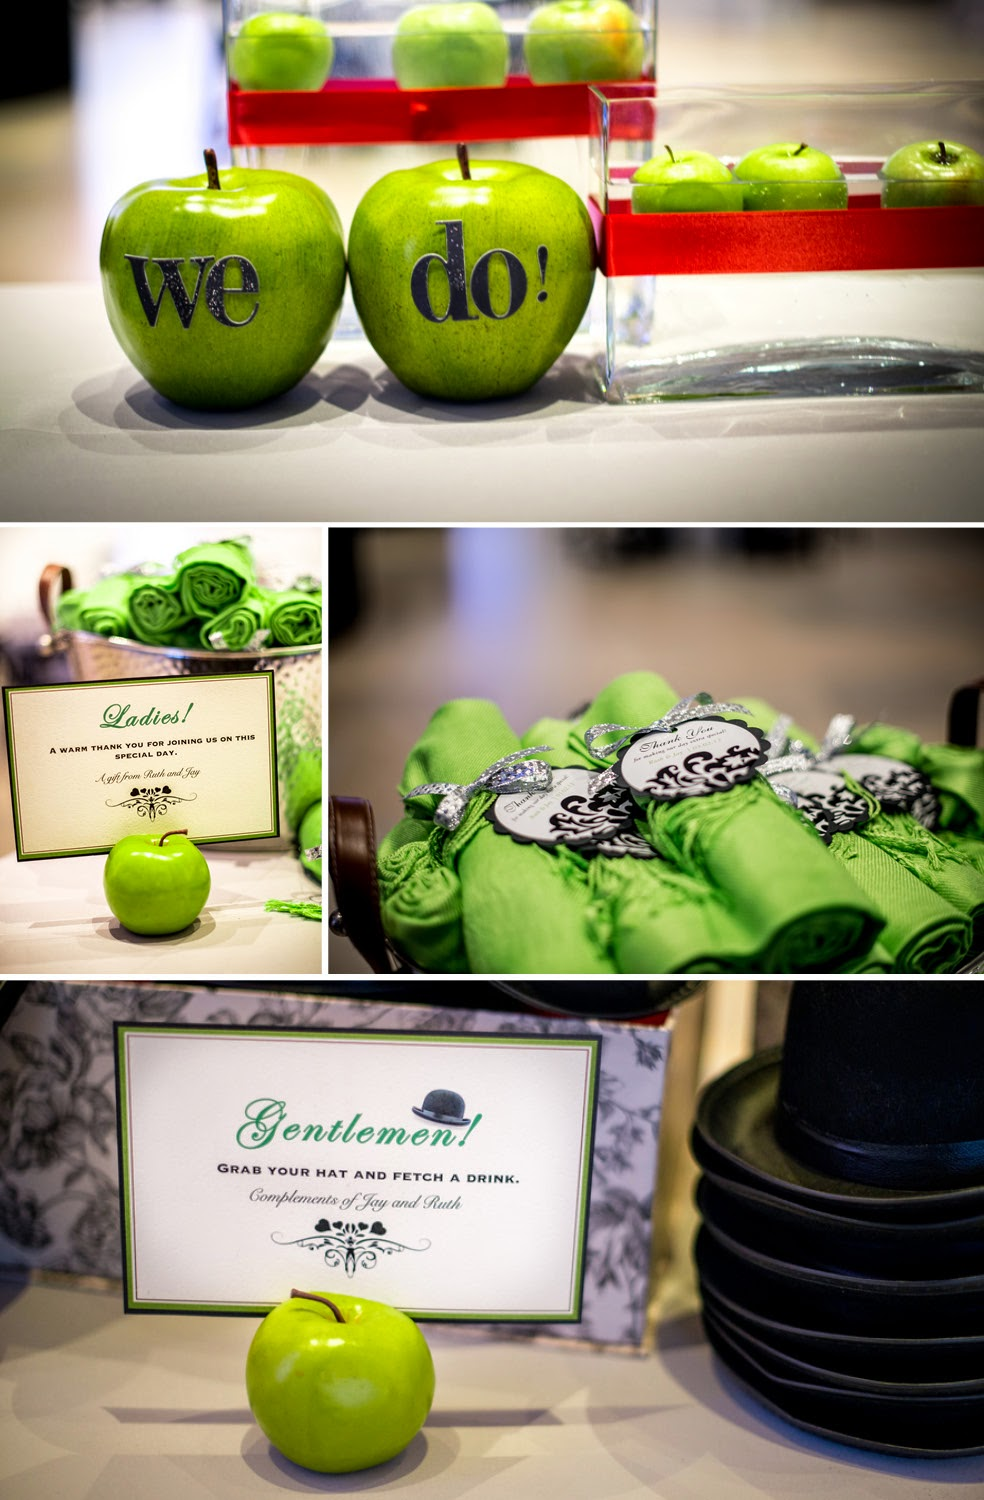 Using green apples in your wedding decor wedding stuff ideas junglespirit Image collections